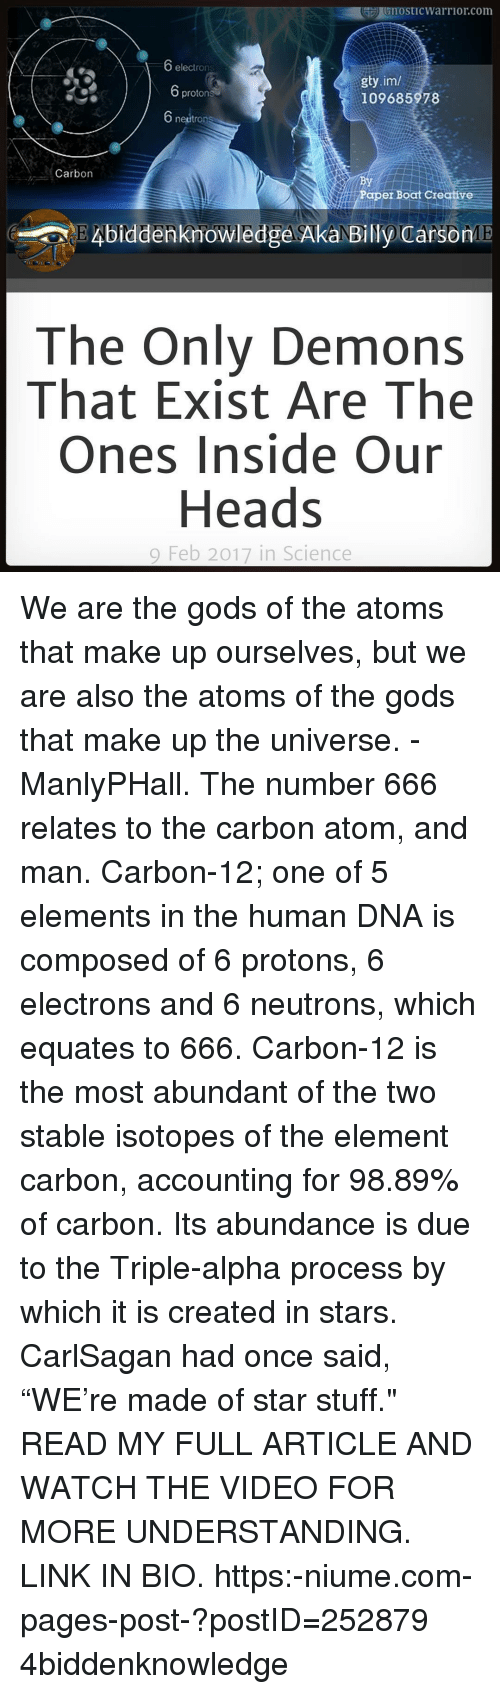 """Electronical: GnostICWarrior com  electrons  gty.im/  protons  109685978  neutron  Carbon  Paper Boat Creative  Knowledge AkaNE  CarsonME  The Only Demons  That Exist Are The  Ones Inside Our  Heads  9 Feb 2017 in Science We are the gods of the atoms that make up ourselves, but we are also the atoms of the gods that make up the universe. - ManlyPHall. The number 666 relates to the carbon atom, and man. Carbon-12; one of 5 elements in the human DNA is composed of 6 protons, 6 electrons and 6 neutrons, which equates to 666. Carbon-12 is the most abundant of the two stable isotopes of the element carbon, accounting for 98.89% of carbon. Its abundance is due to the Triple-alpha process by which it is created in stars. CarlSagan had once said, """"WE're made of star stuff."""" READ MY FULL ARTICLE AND WATCH THE VIDEO FOR MORE UNDERSTANDING. LINK IN BIO. https:-niume.com-pages-post-?postID=252879 4biddenknowledge"""